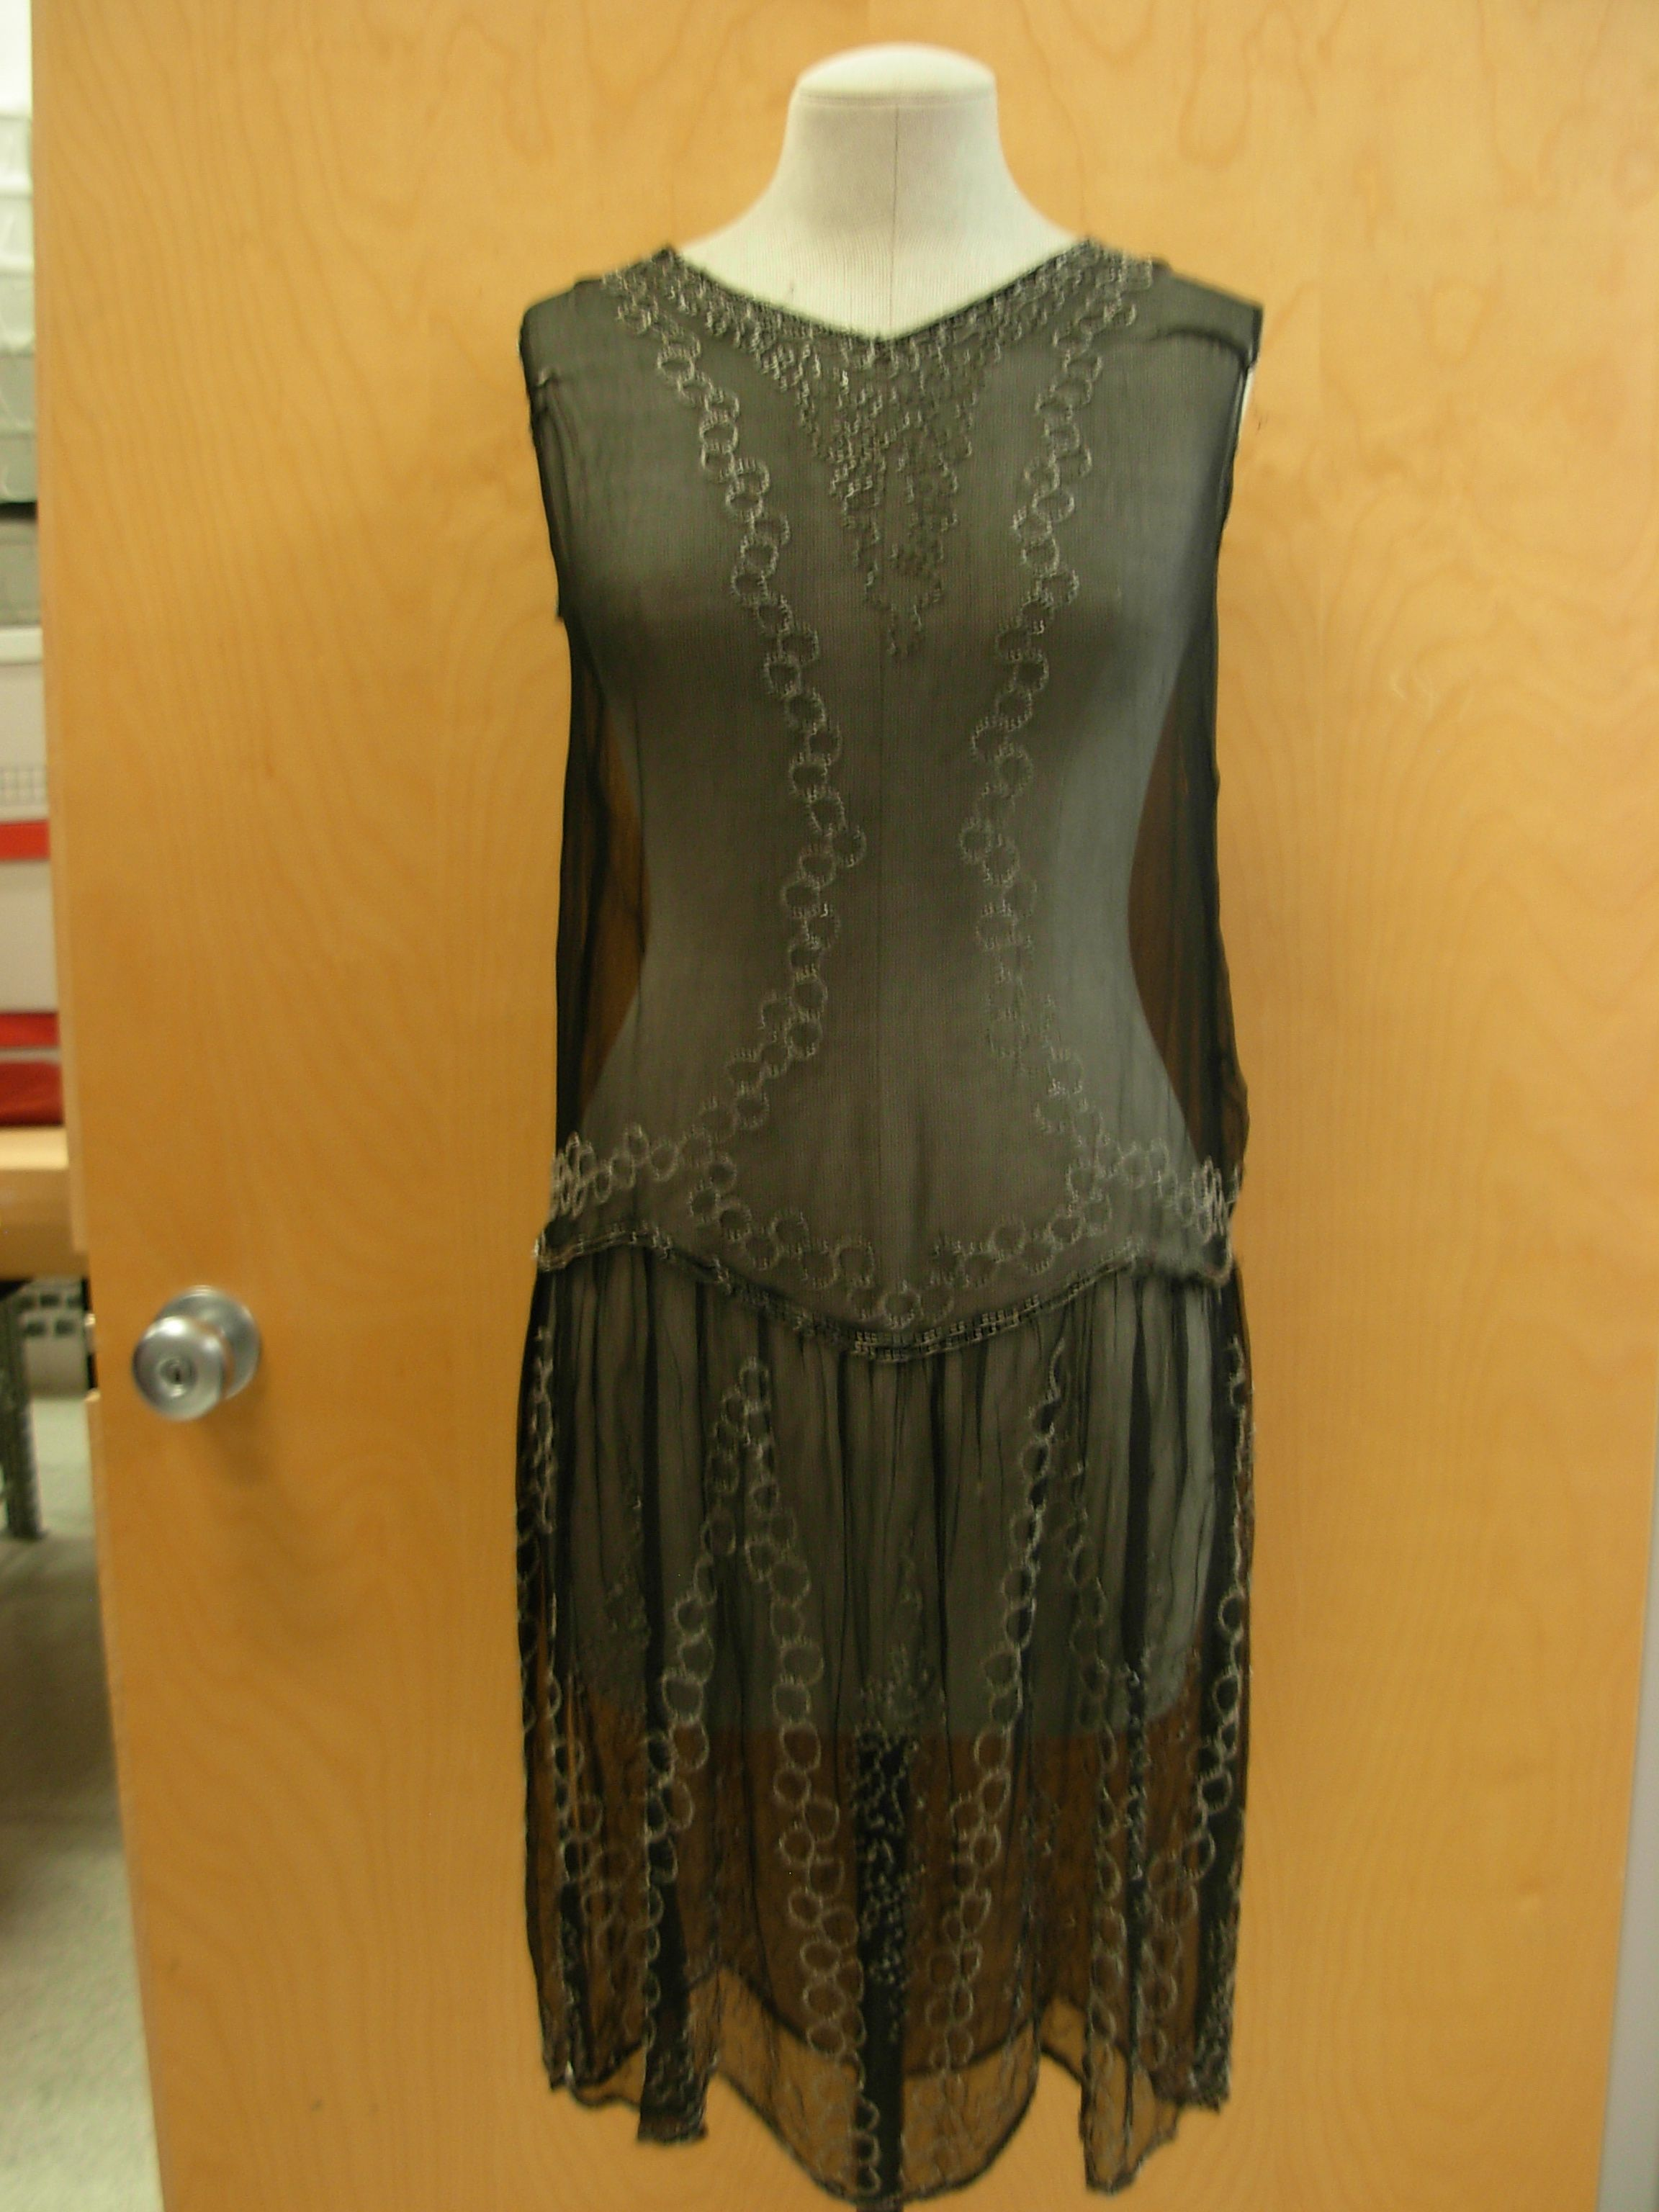 Sheer dress with silver metal ring details.